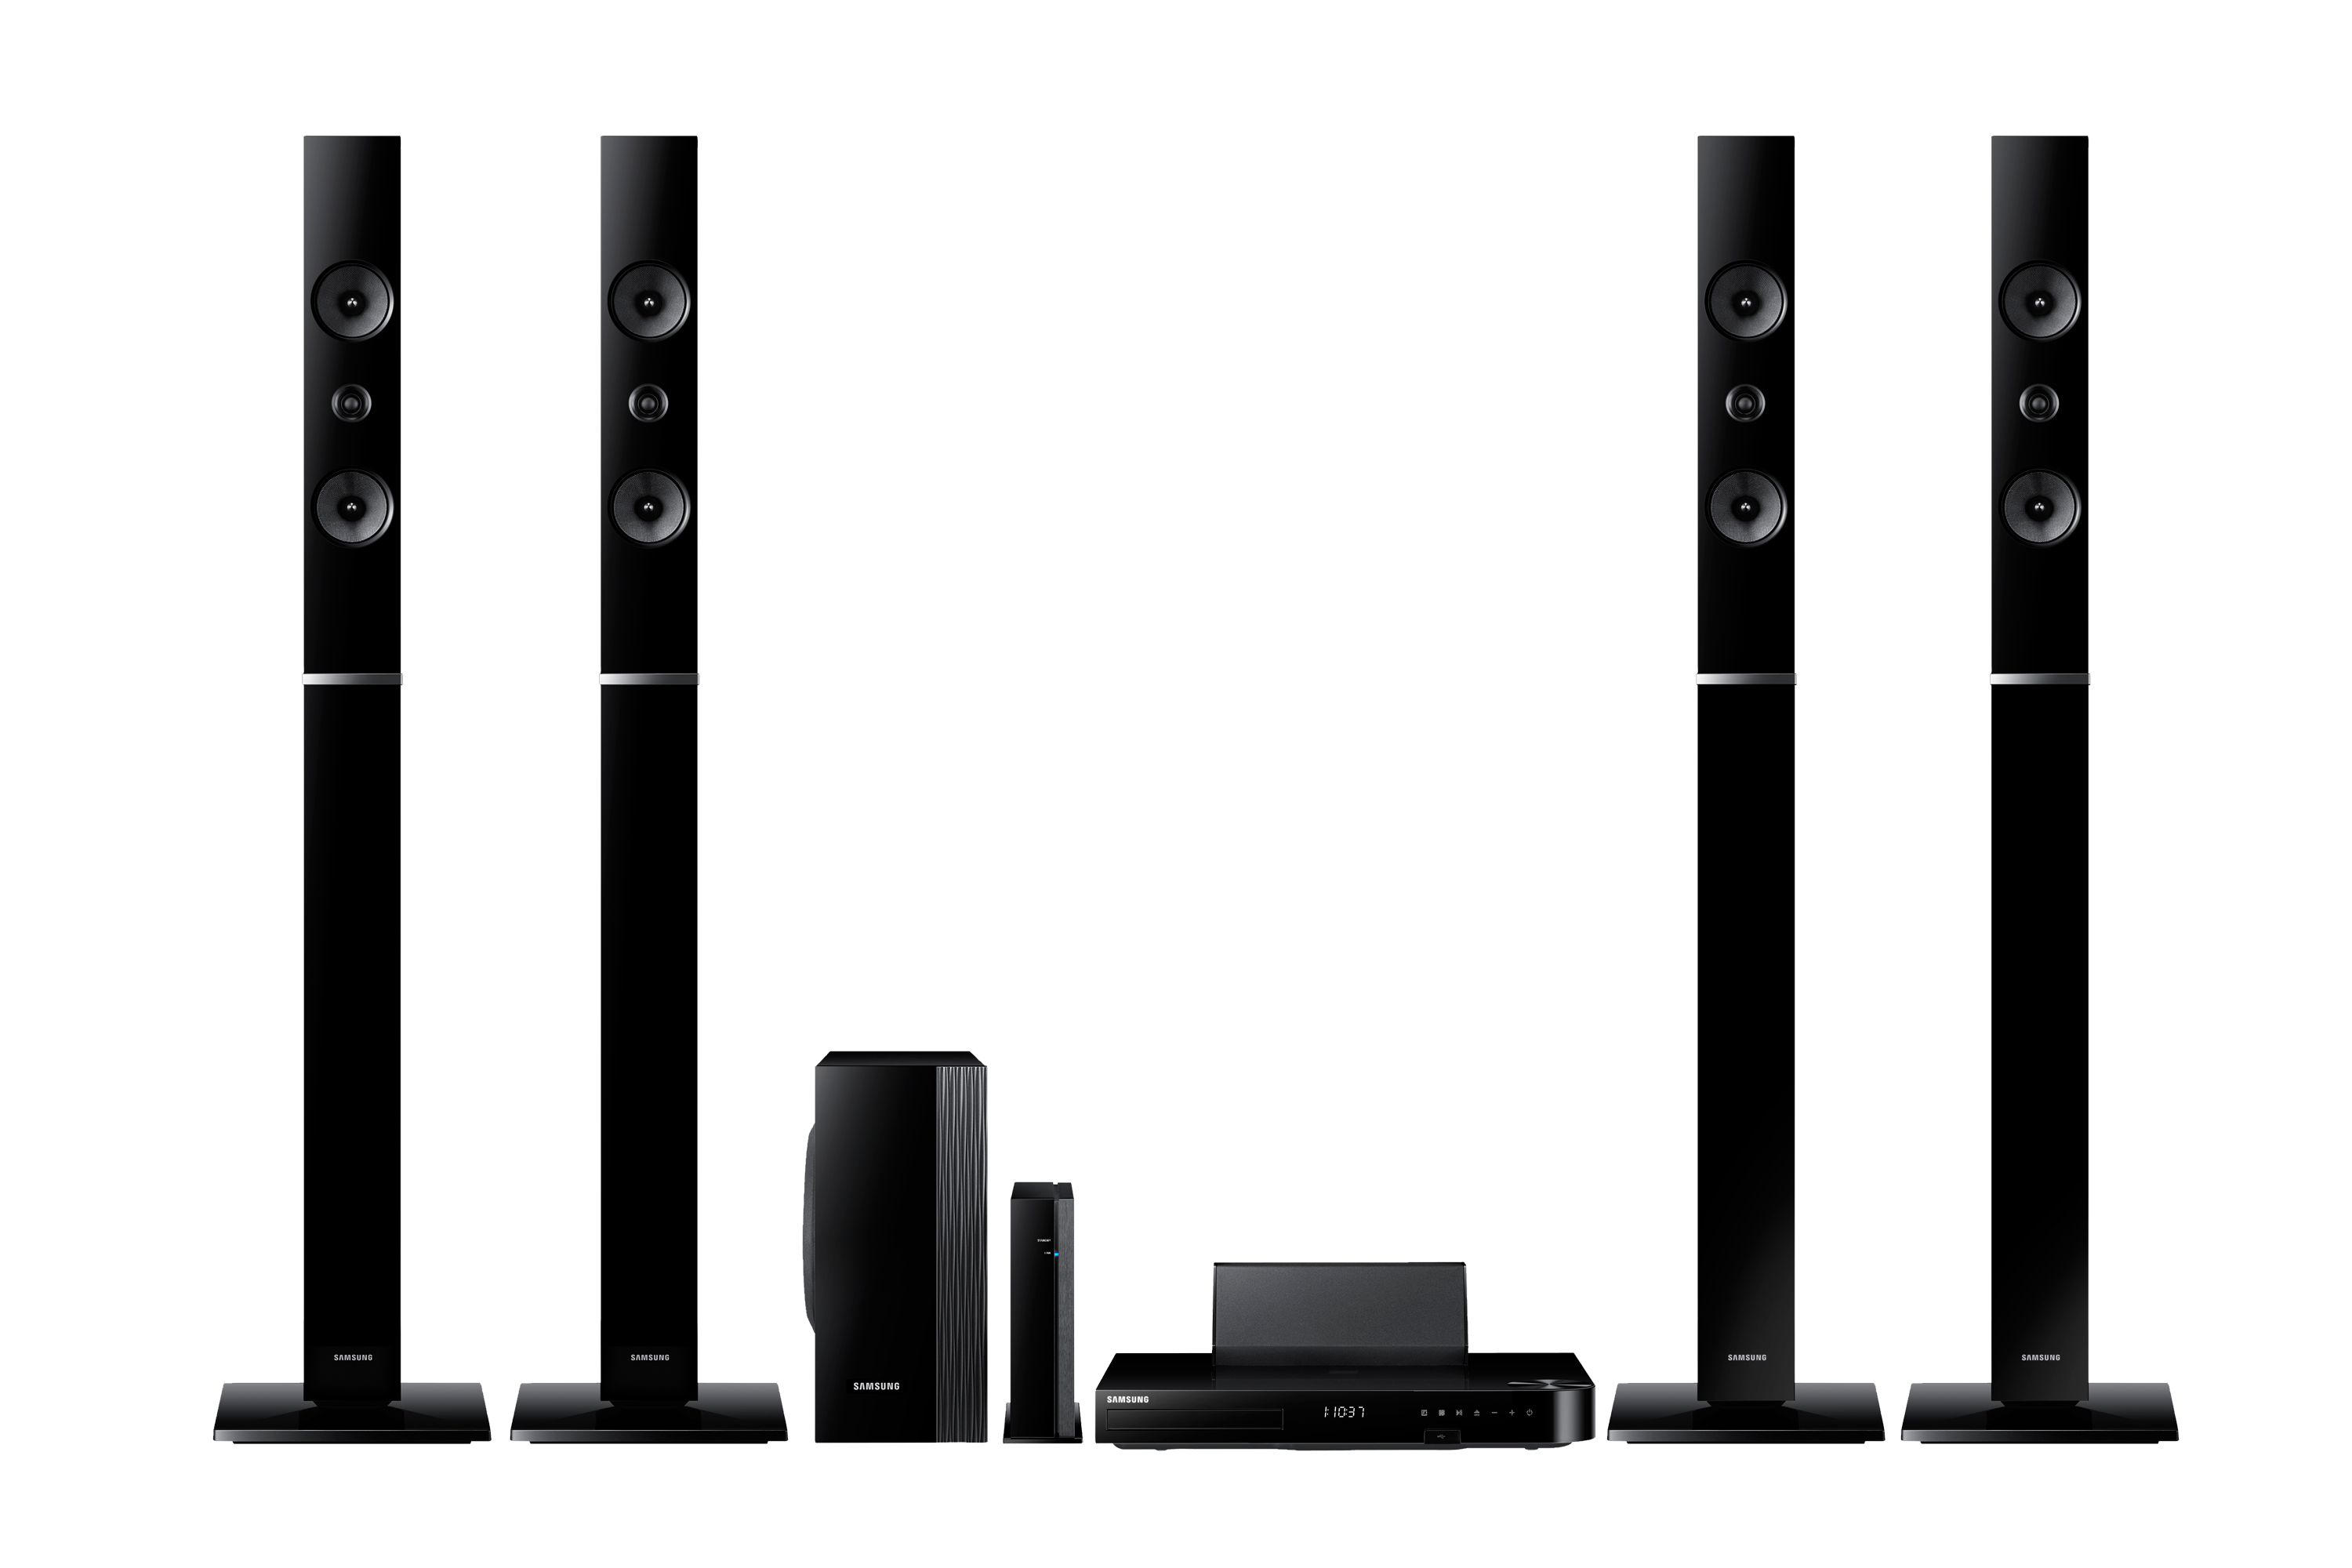 Series 6 Home Theatre System